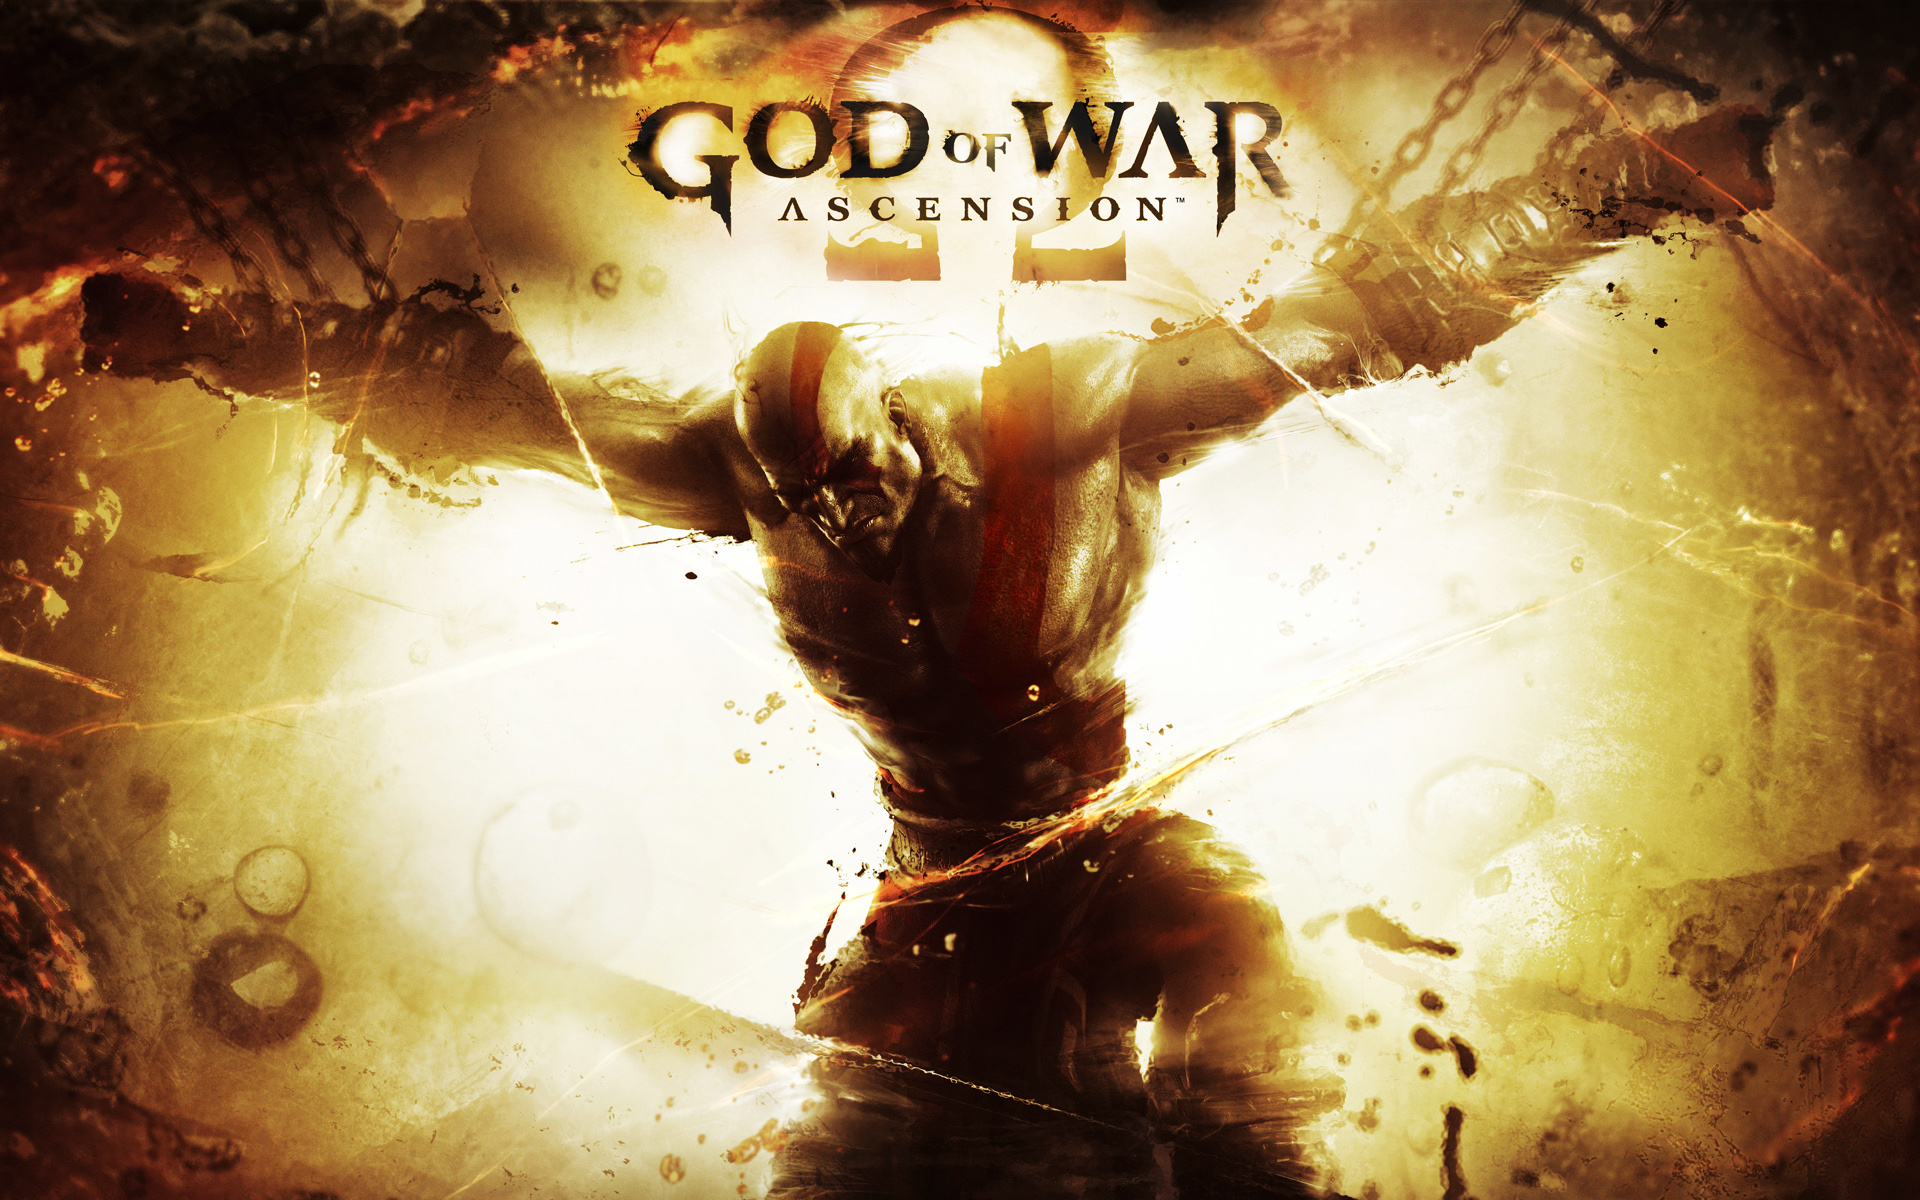 http://1.bp.blogspot.com/-Qcu7NlIJQh0/UOcOb_Bmk6I/AAAAAAAAG8I/aApl6cYiSmM/s2000/Chained-Kratos-God-of-War-Ascension-HD-Wallpaper_Vvallpaper.Net.jpg